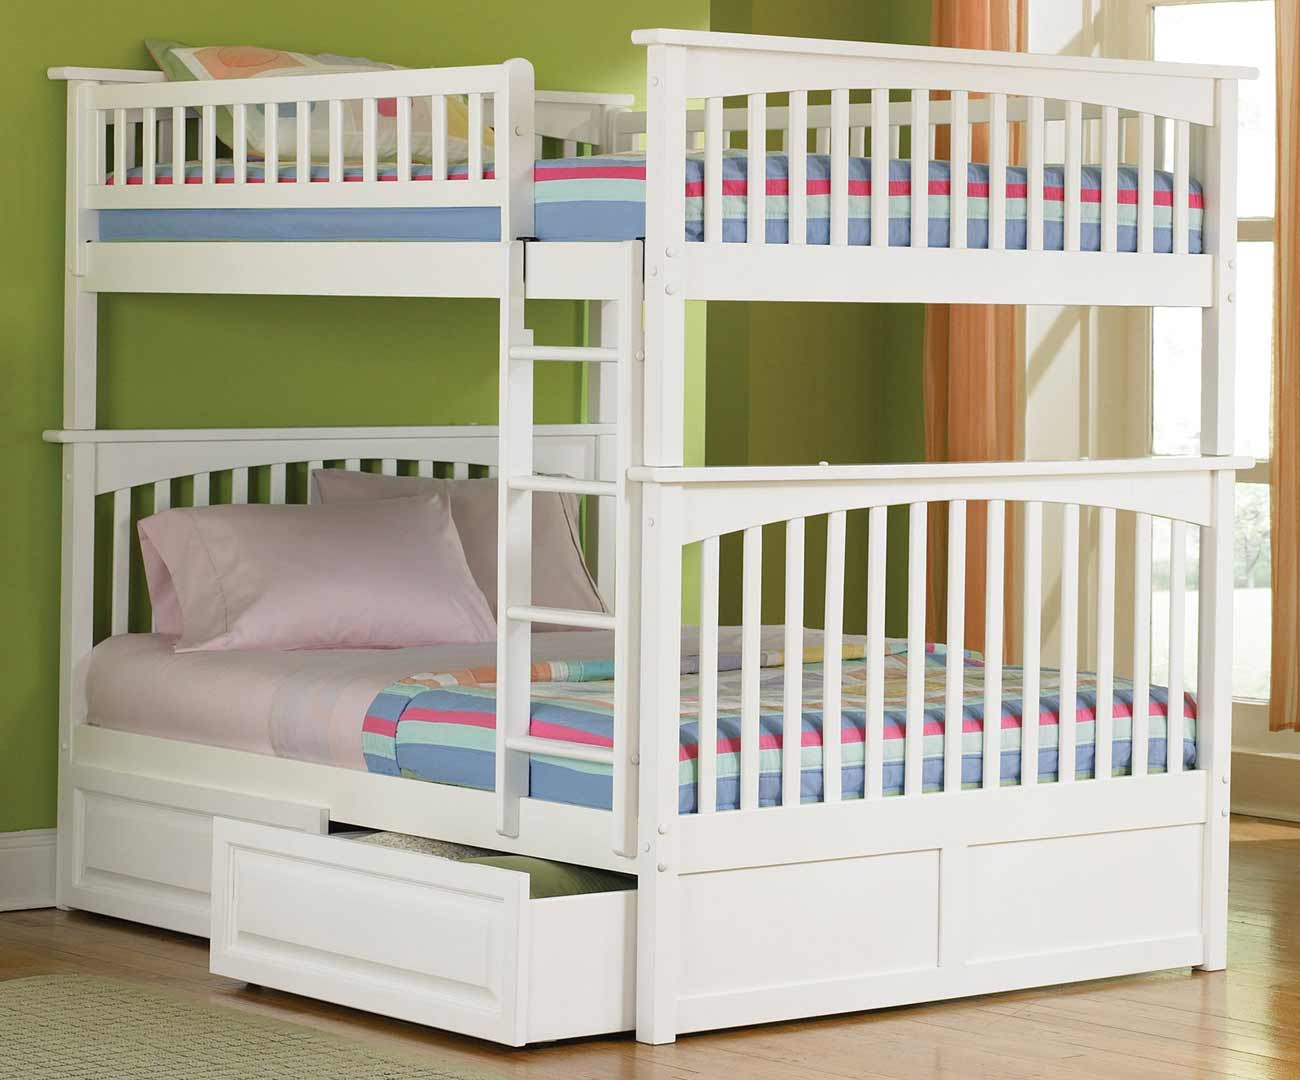 Ebay Bunk Bed with Desk | Charlotte Nc Mattress | Kidsroomstogo